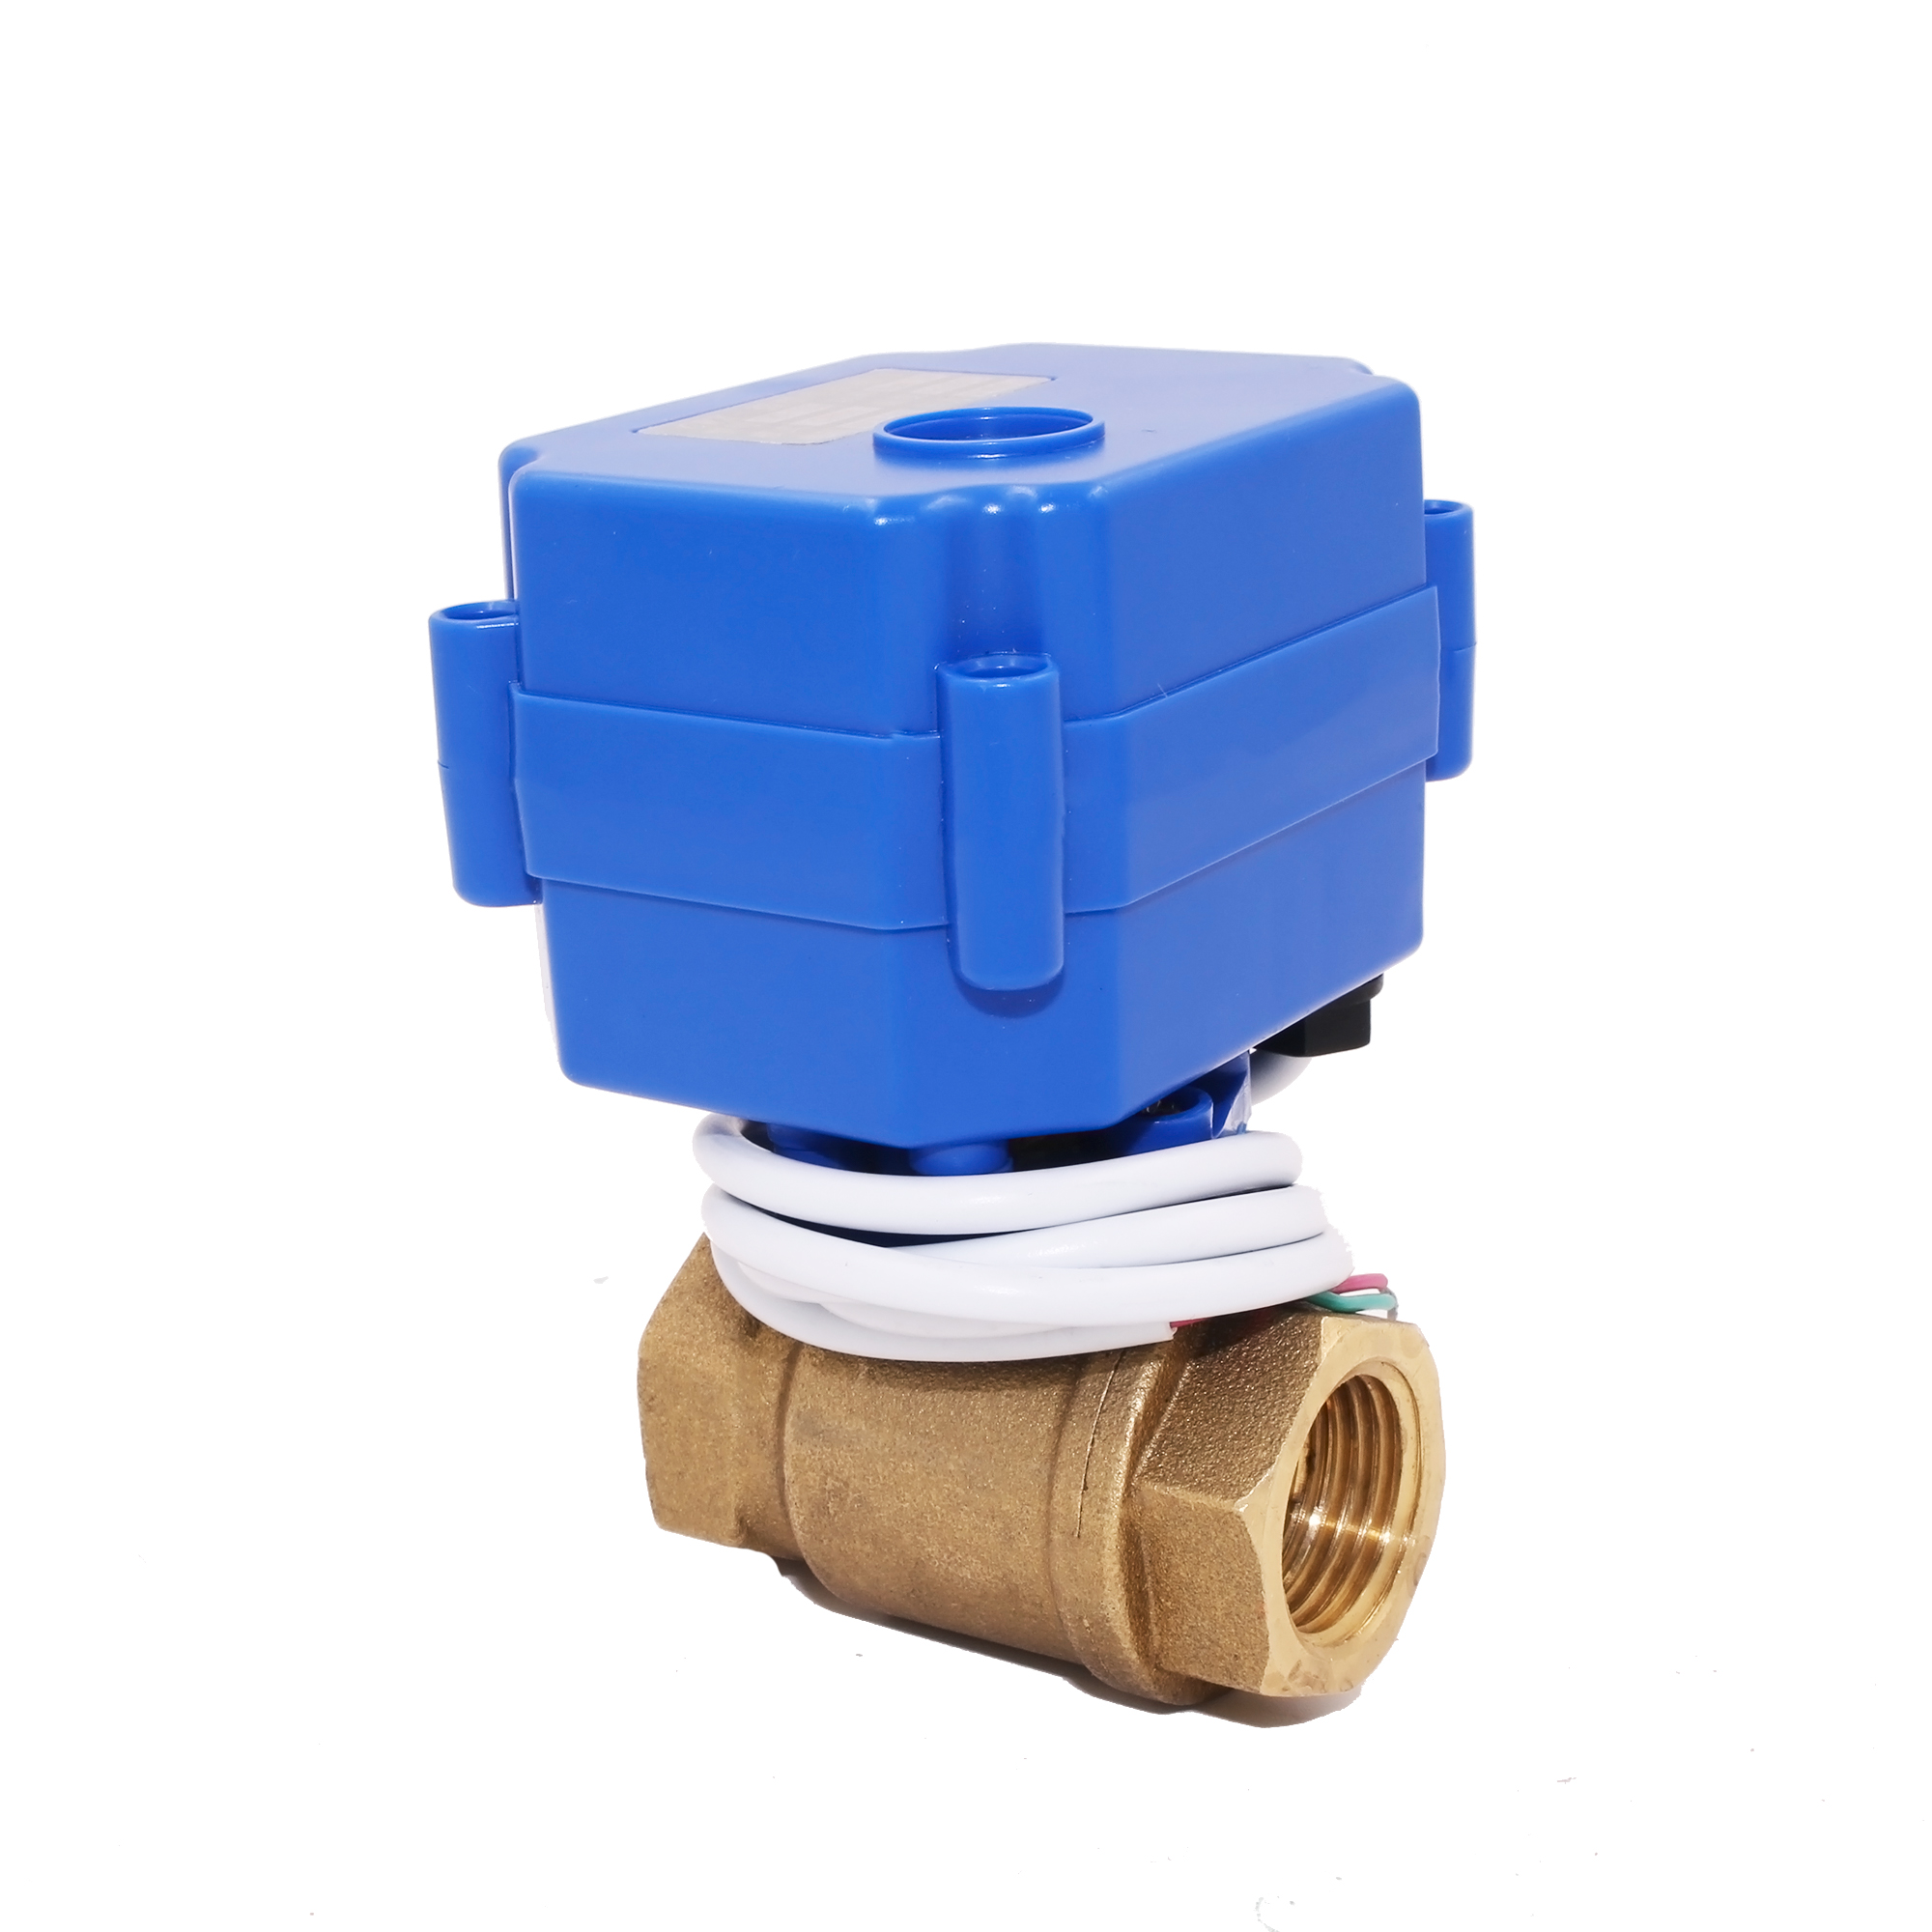 CWX-15Q mini solenoid ball valve 12v 24v 2 way for water <strong>system</strong>,IC card water meter,HVAC,water filter